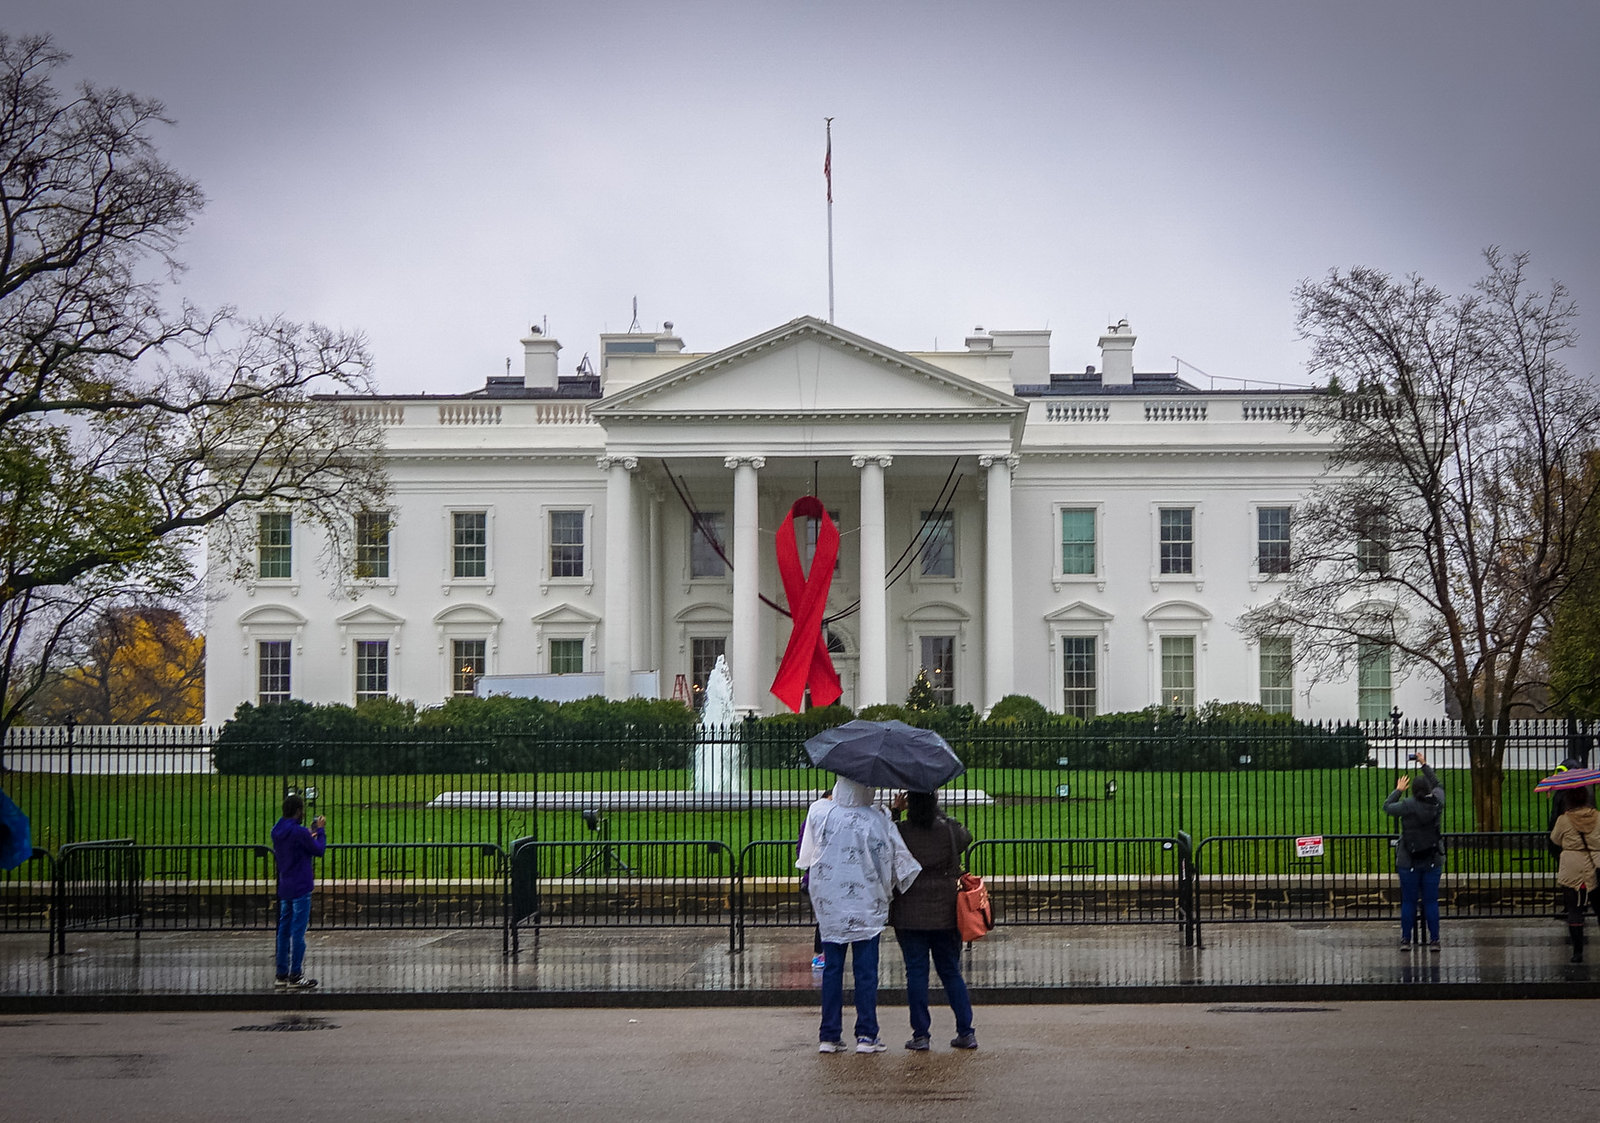 2015 World AIDS Day - Red Ribbon on White House - Washington DC USA 00410